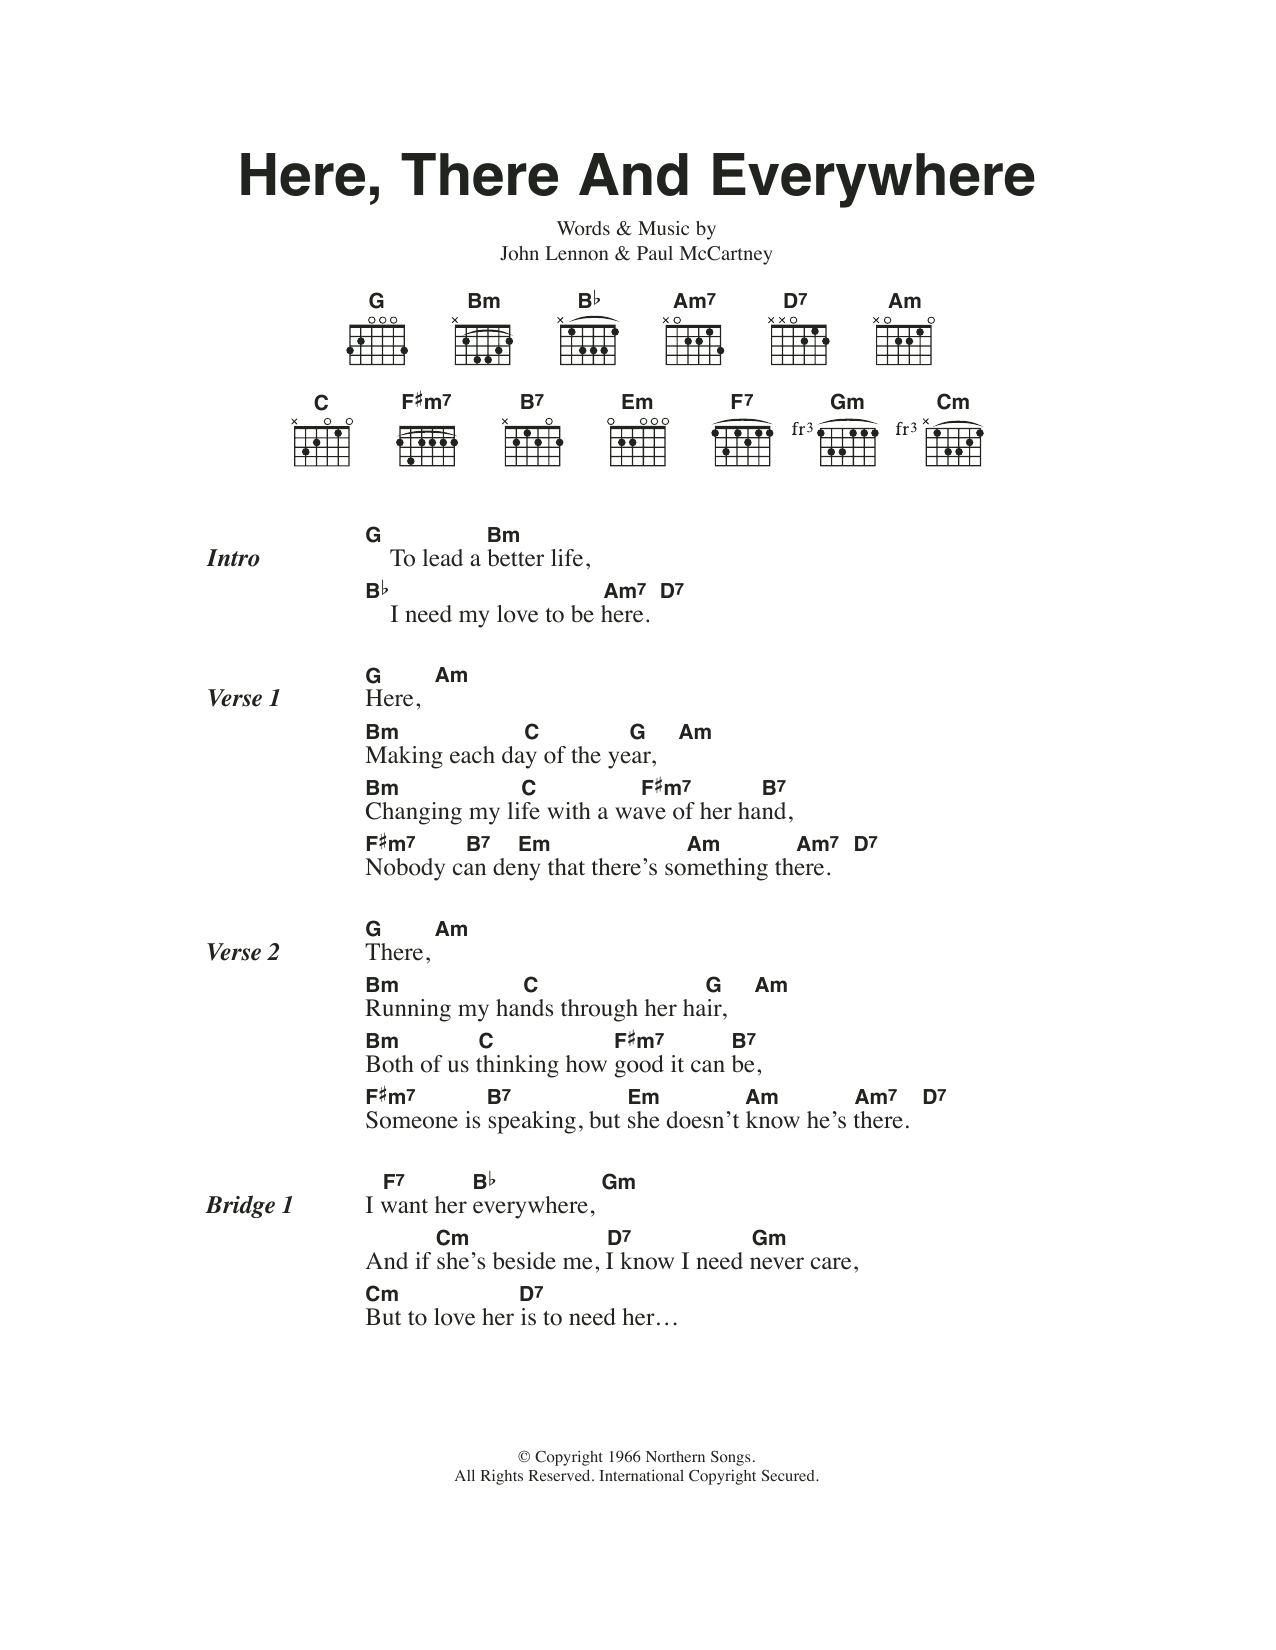 Here, There And Everywhere by The Beatles Piano, Vocal & Guitar Right Hand  Melody Digital Sheet Music